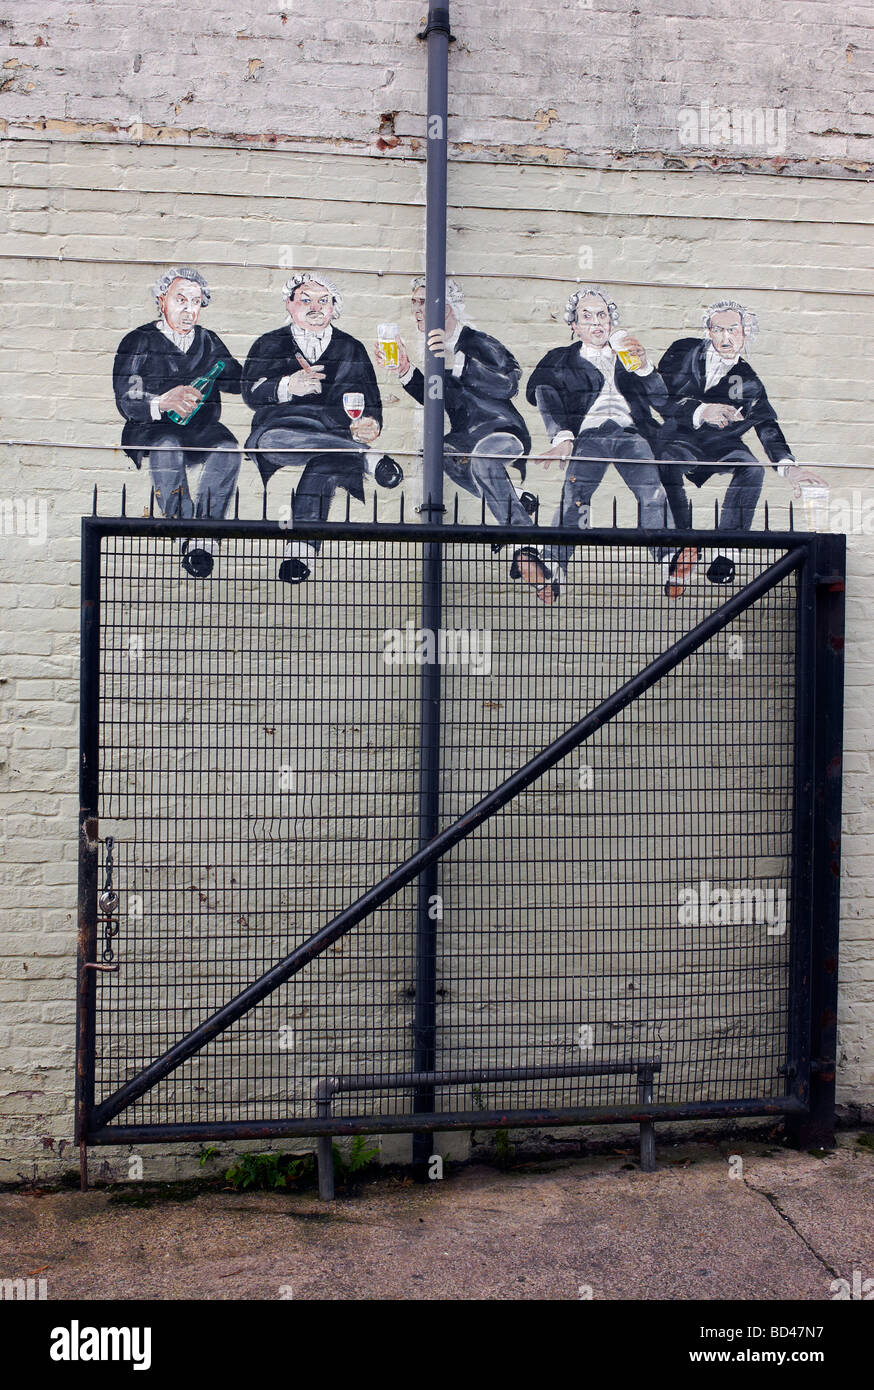 A mural of lawyers seemingly sitting on a gate at the back of the Tilted Wig pub in Warwick, UK - Stock Image